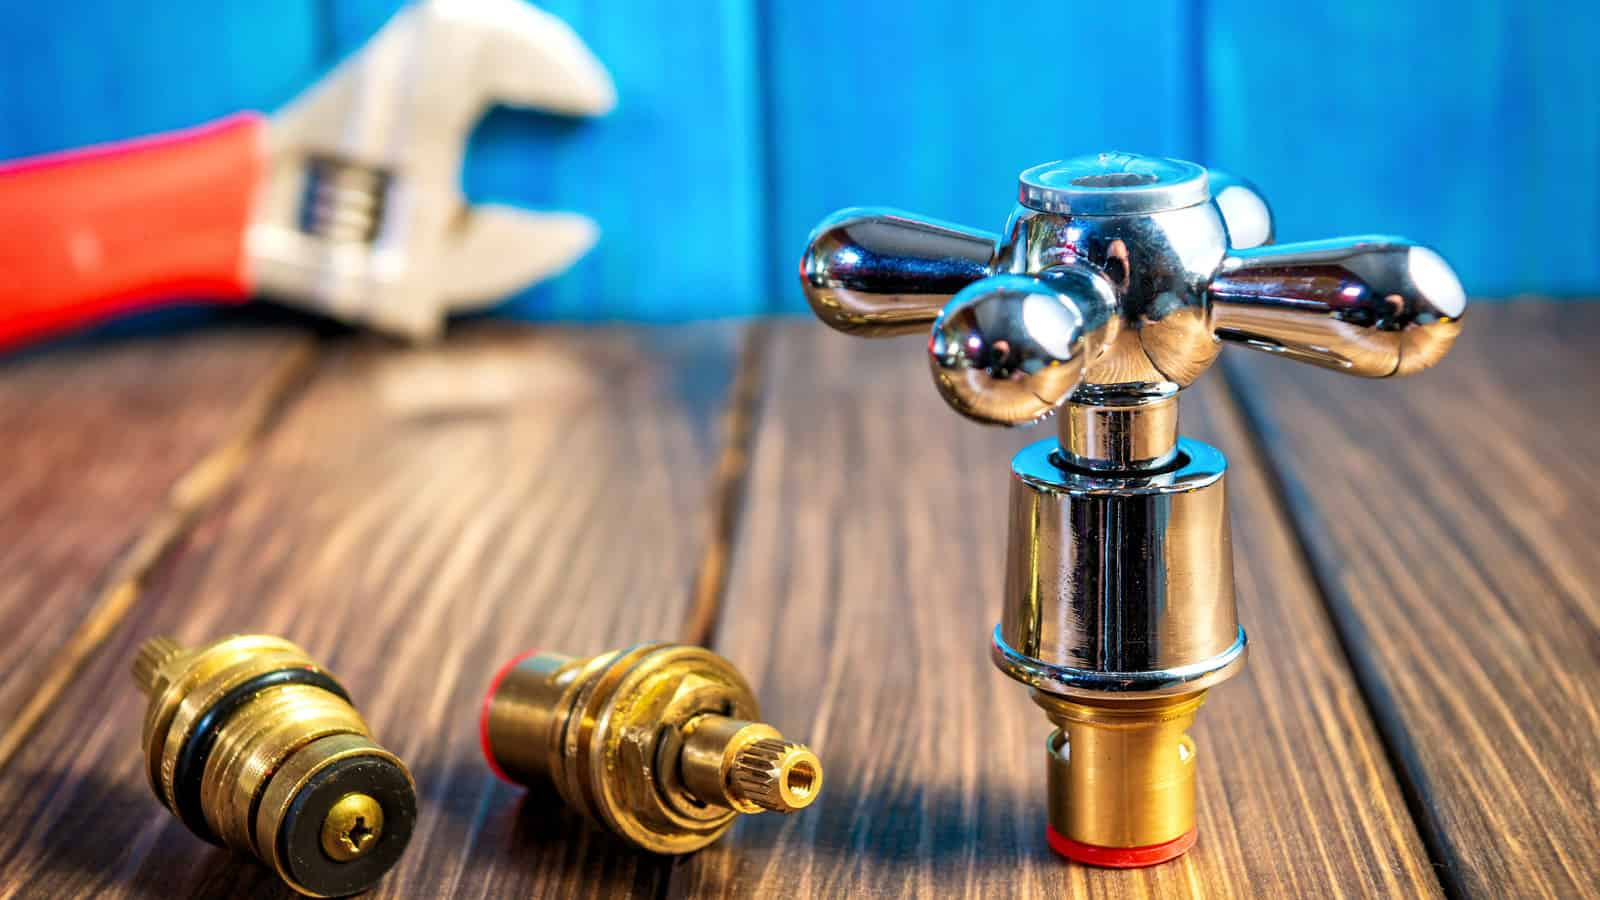 ErnTex Plumbing LLC of Houston